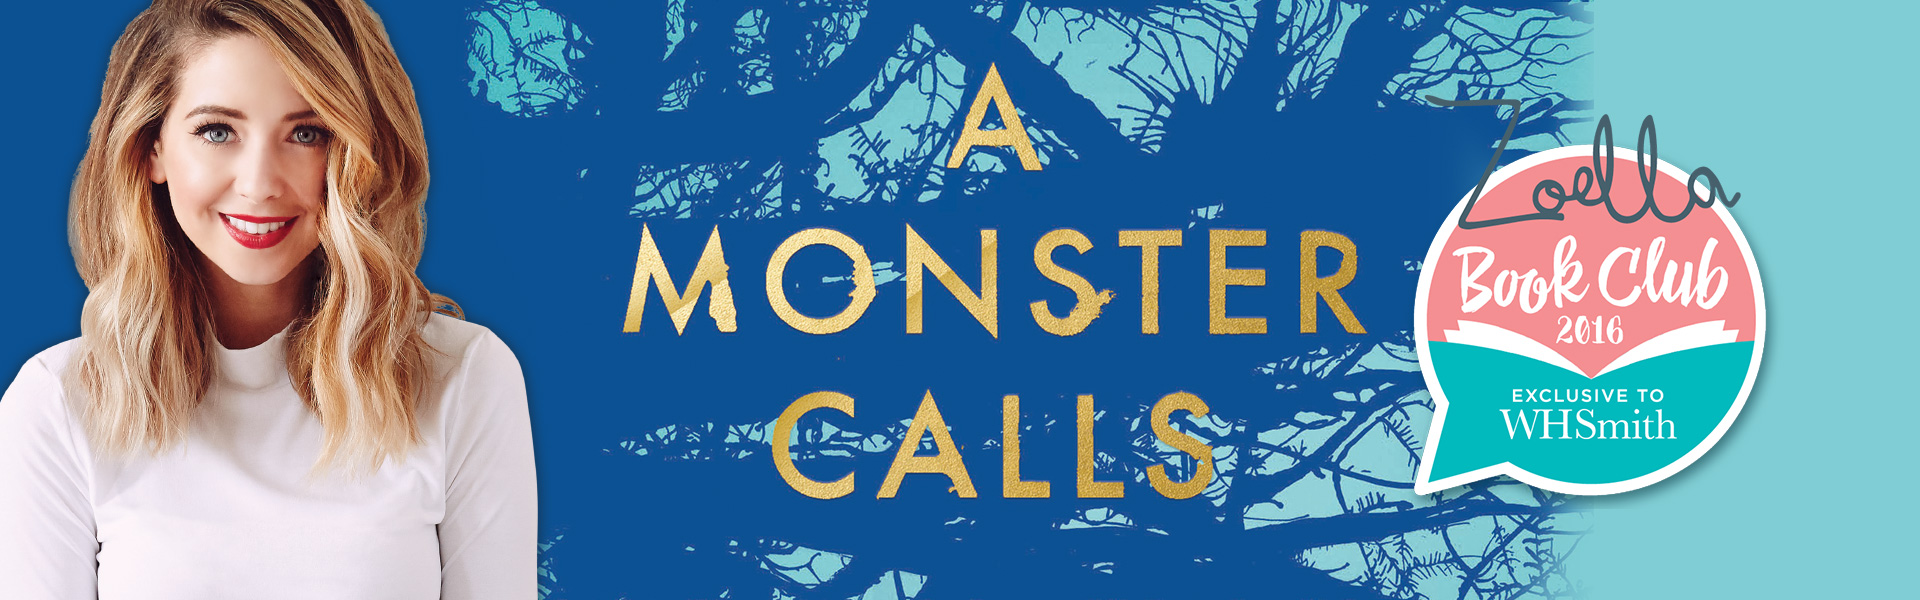 The Zoella Book Club: A Monster Calls by Patrick Ness